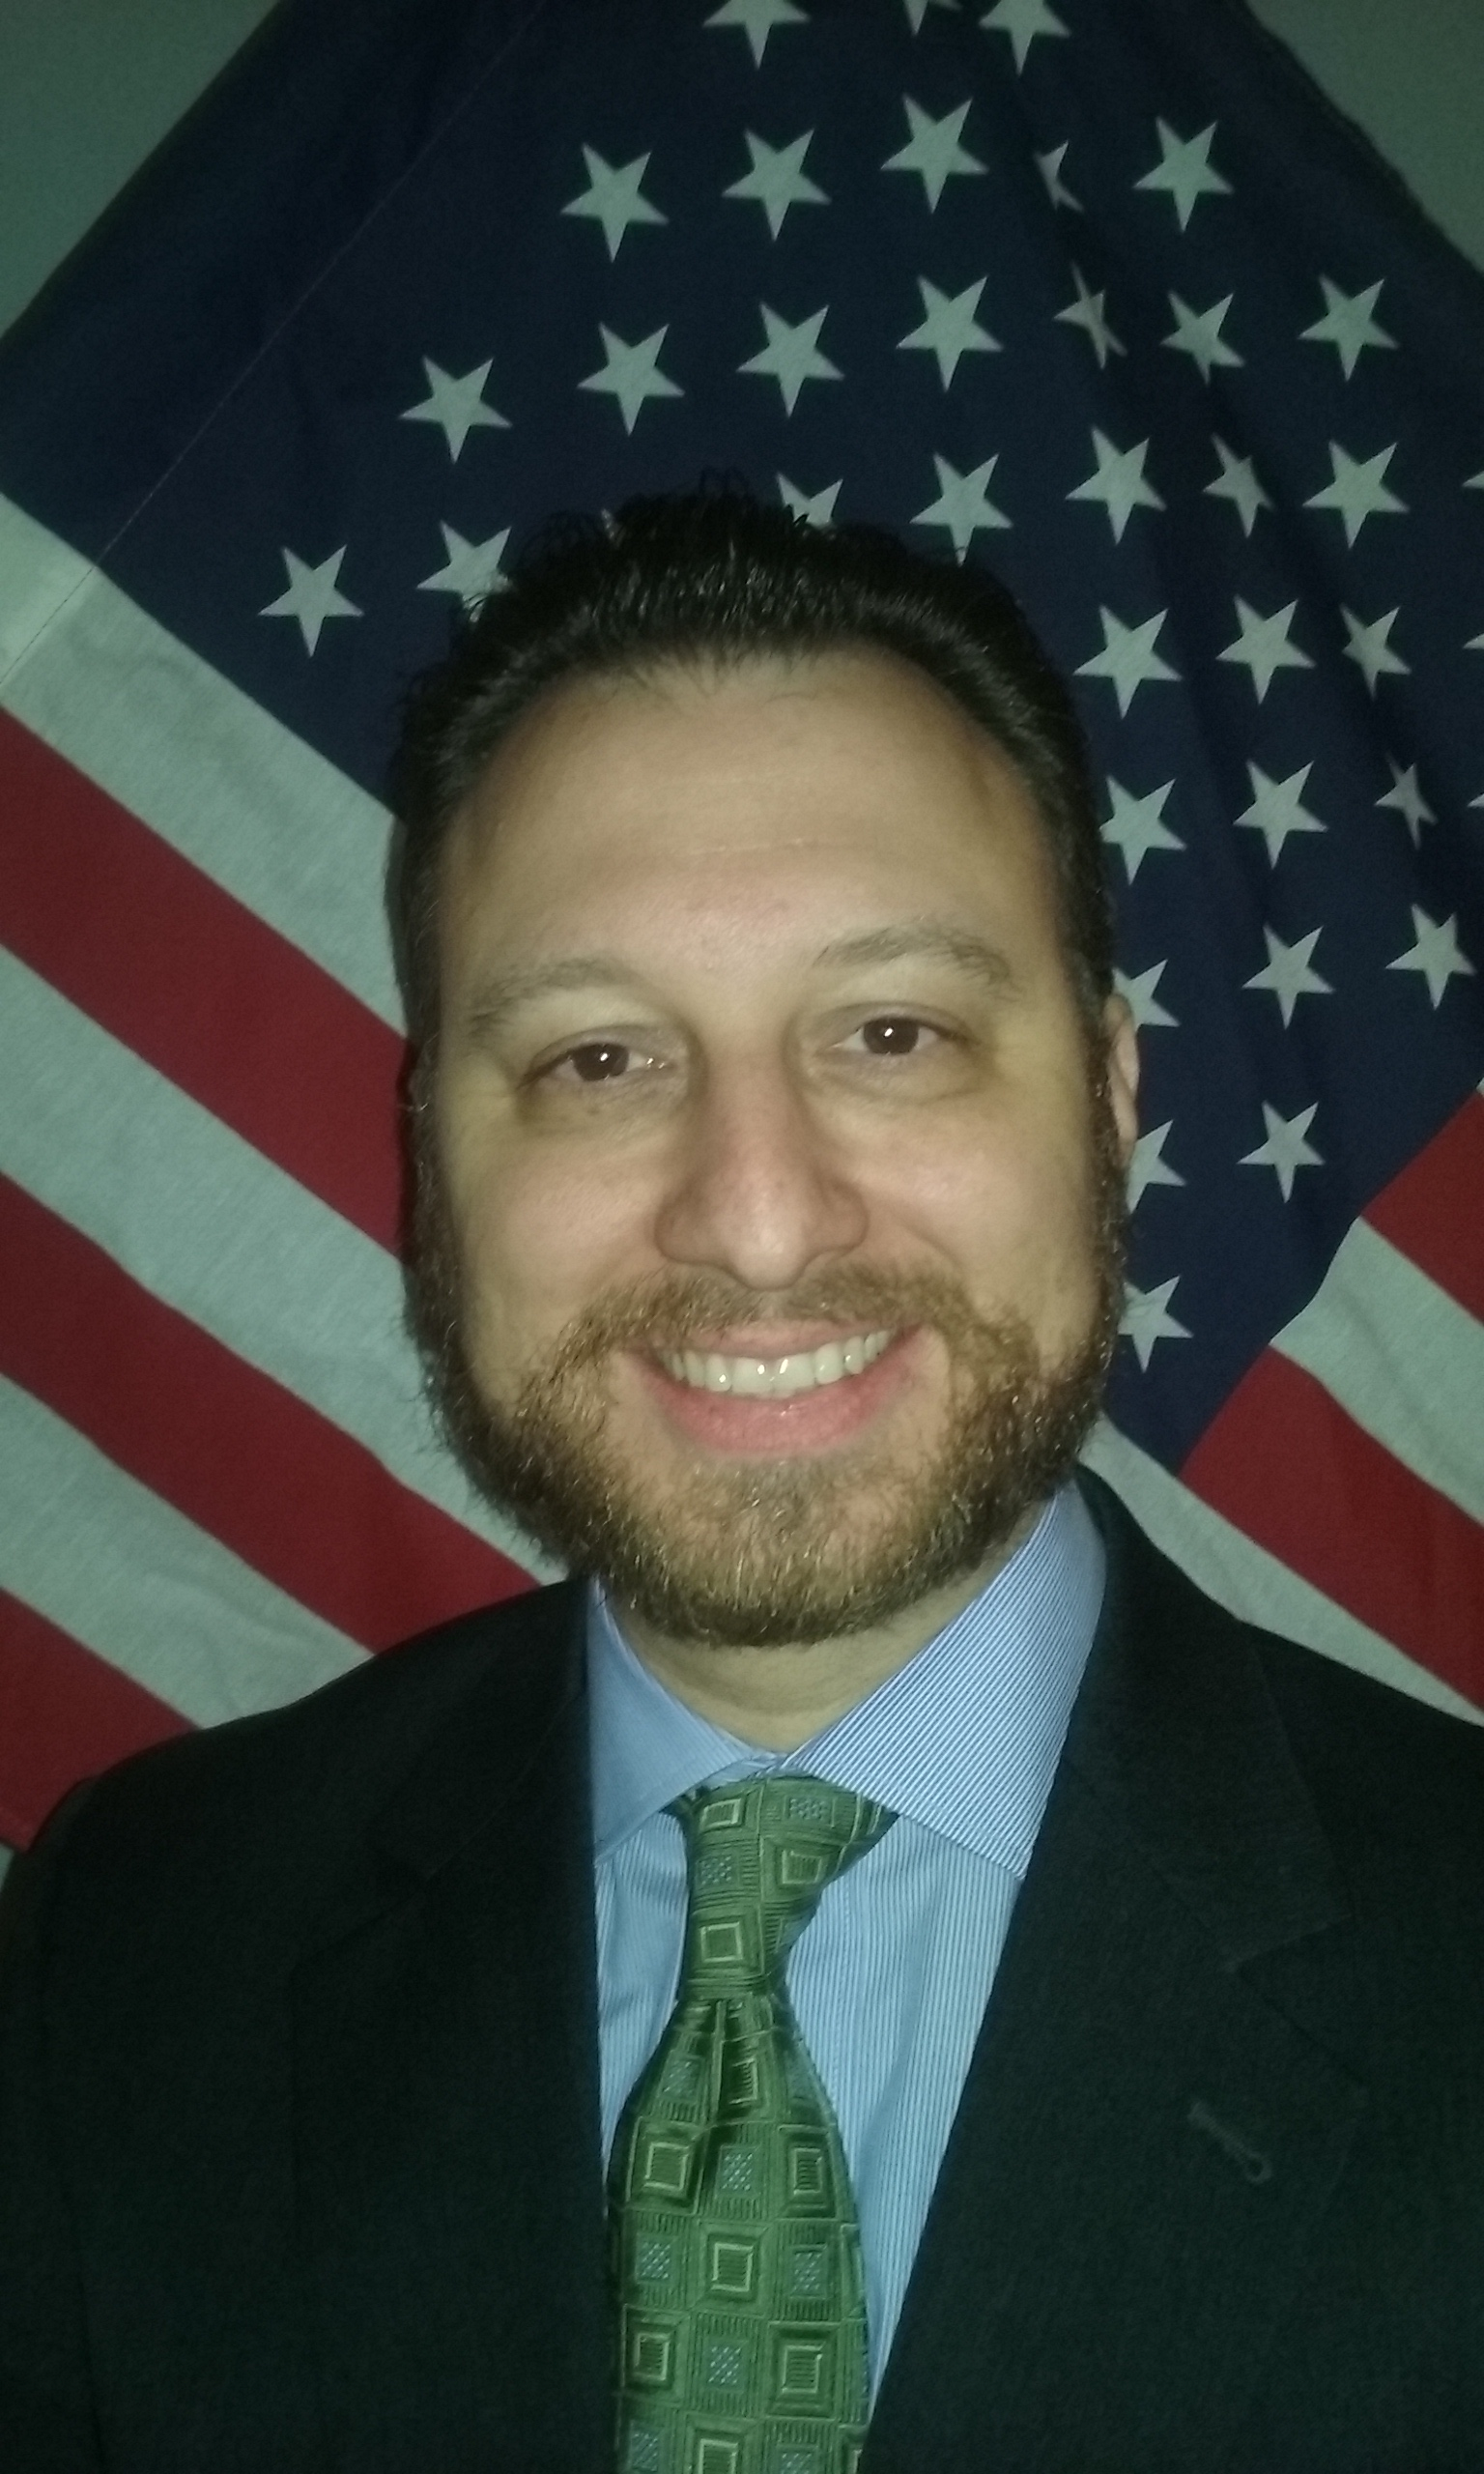 Wenzel is running for congress in CD11.